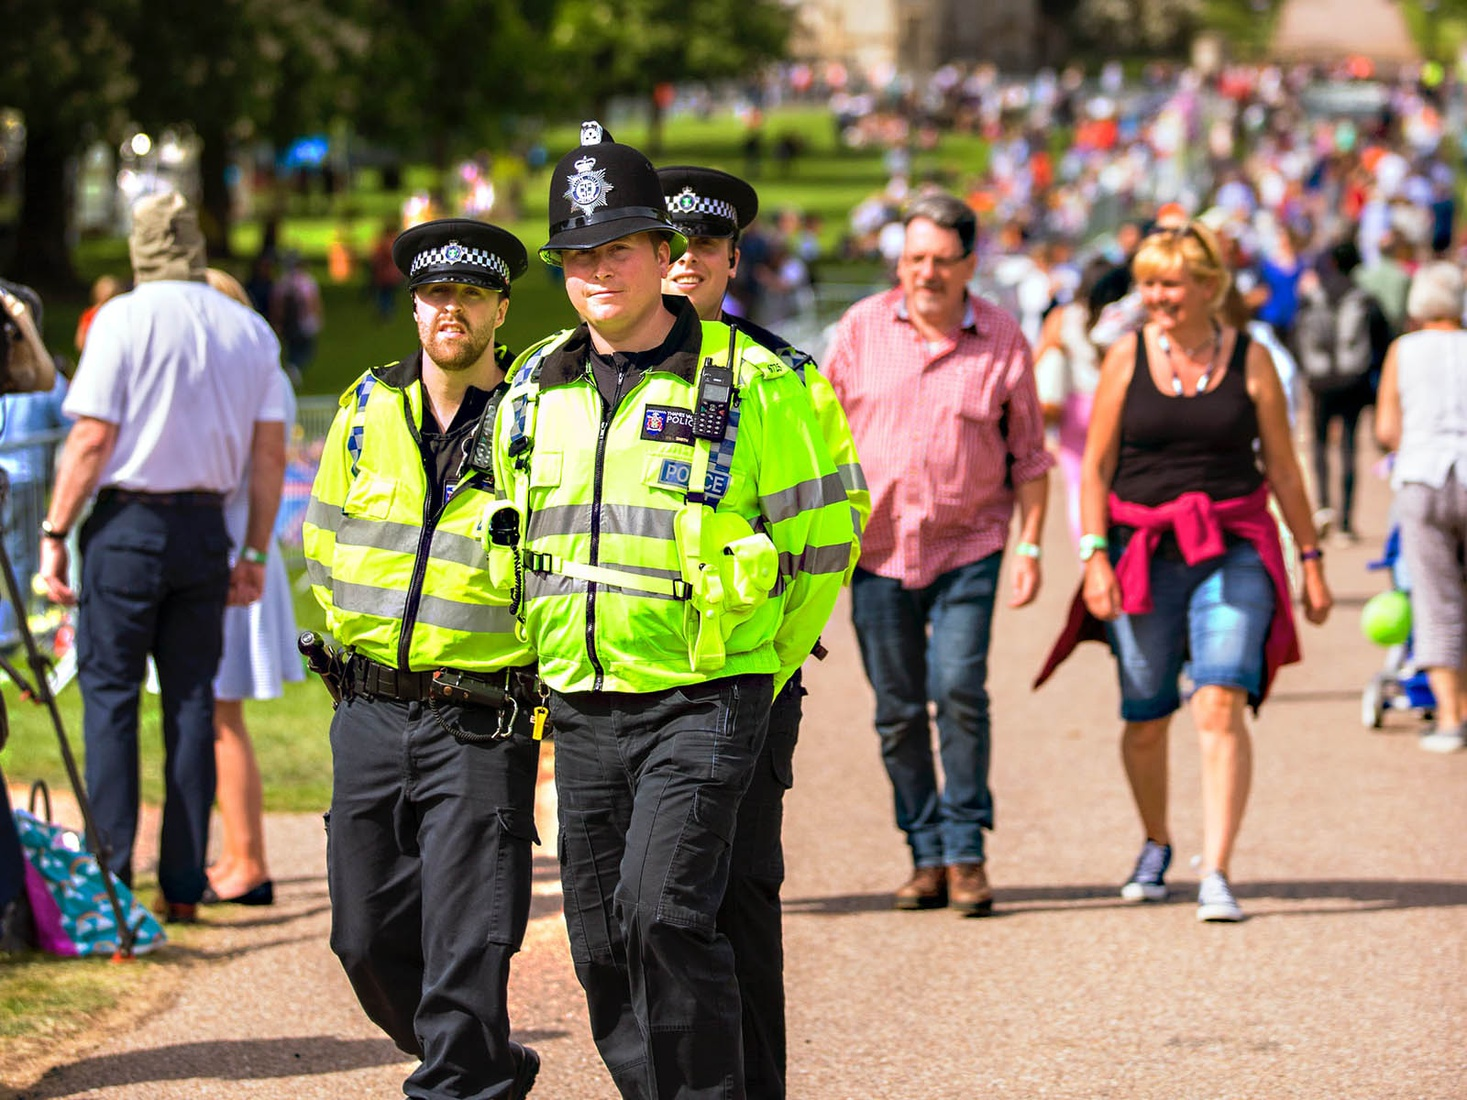 Police officers walking down busy pathway